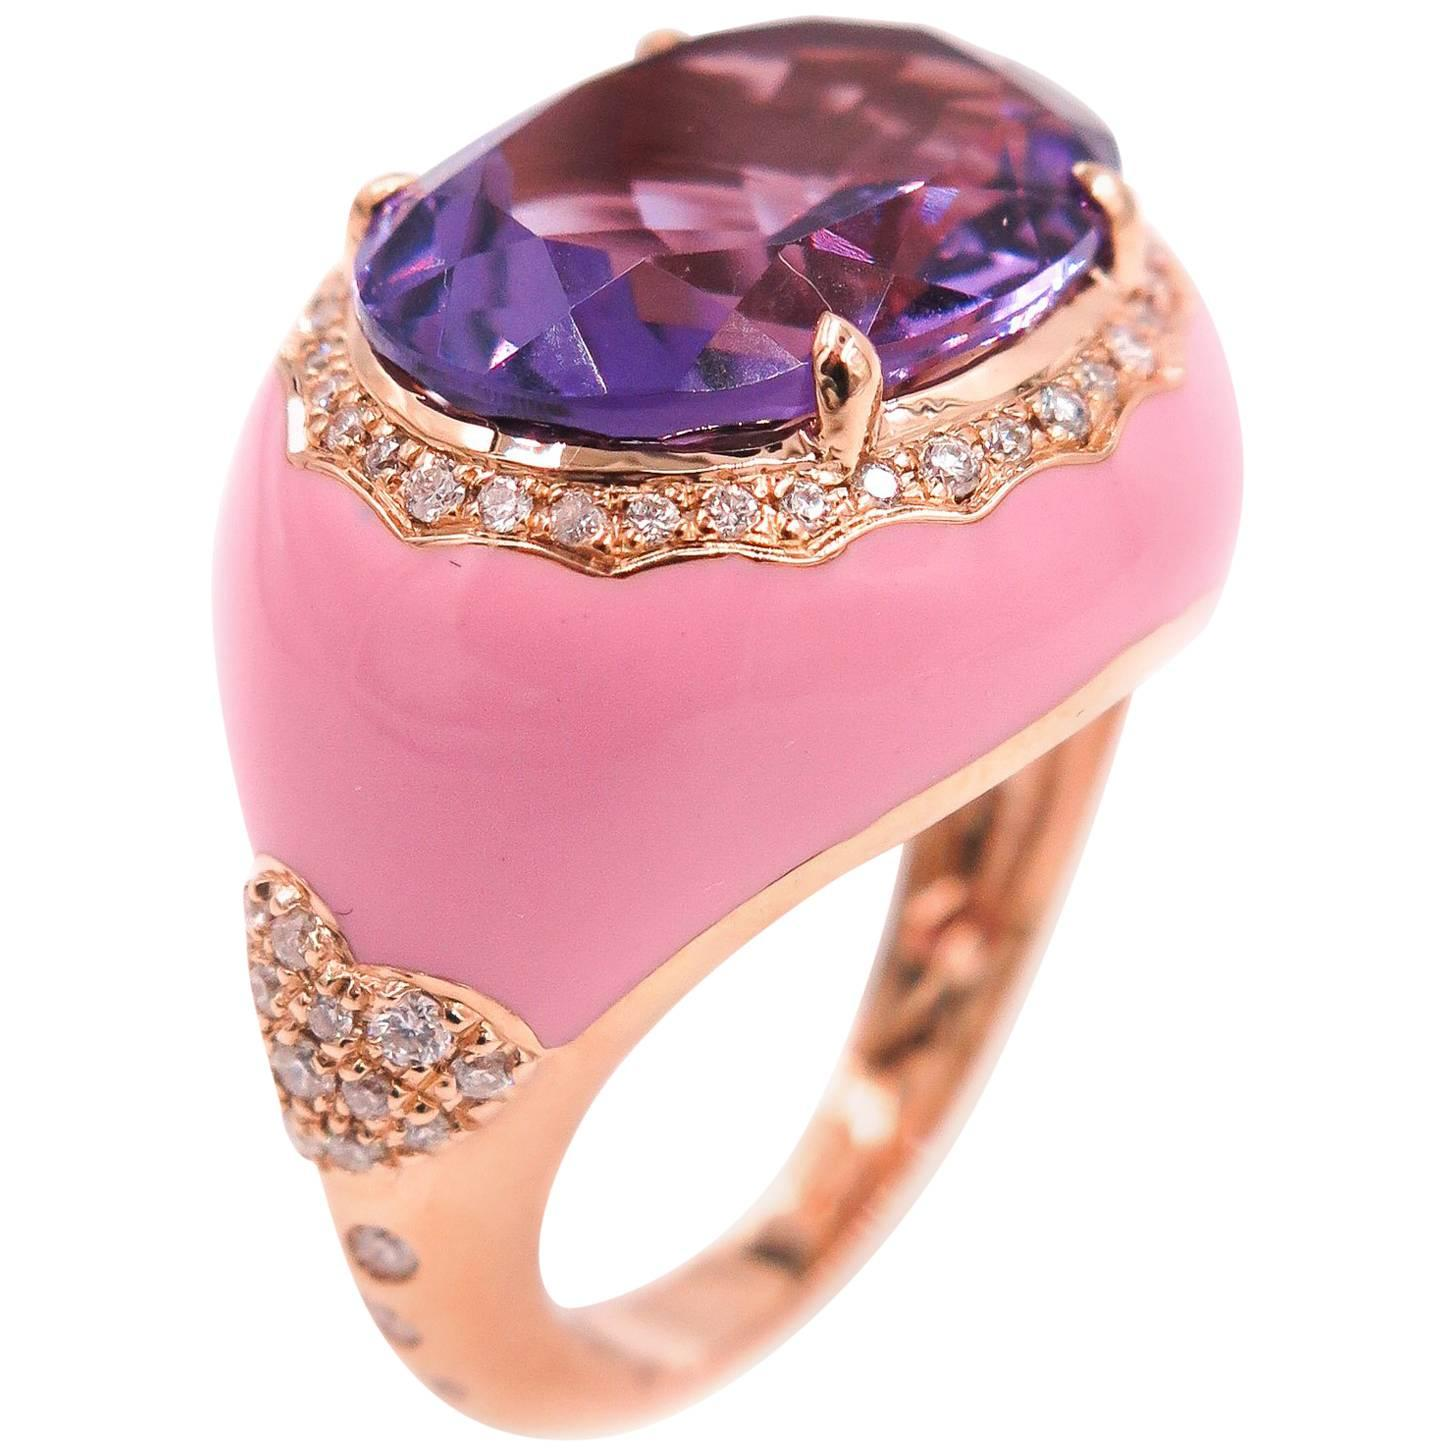 Gucci Horsebit Amethyst Gold Ring For Sale at 1stdibs